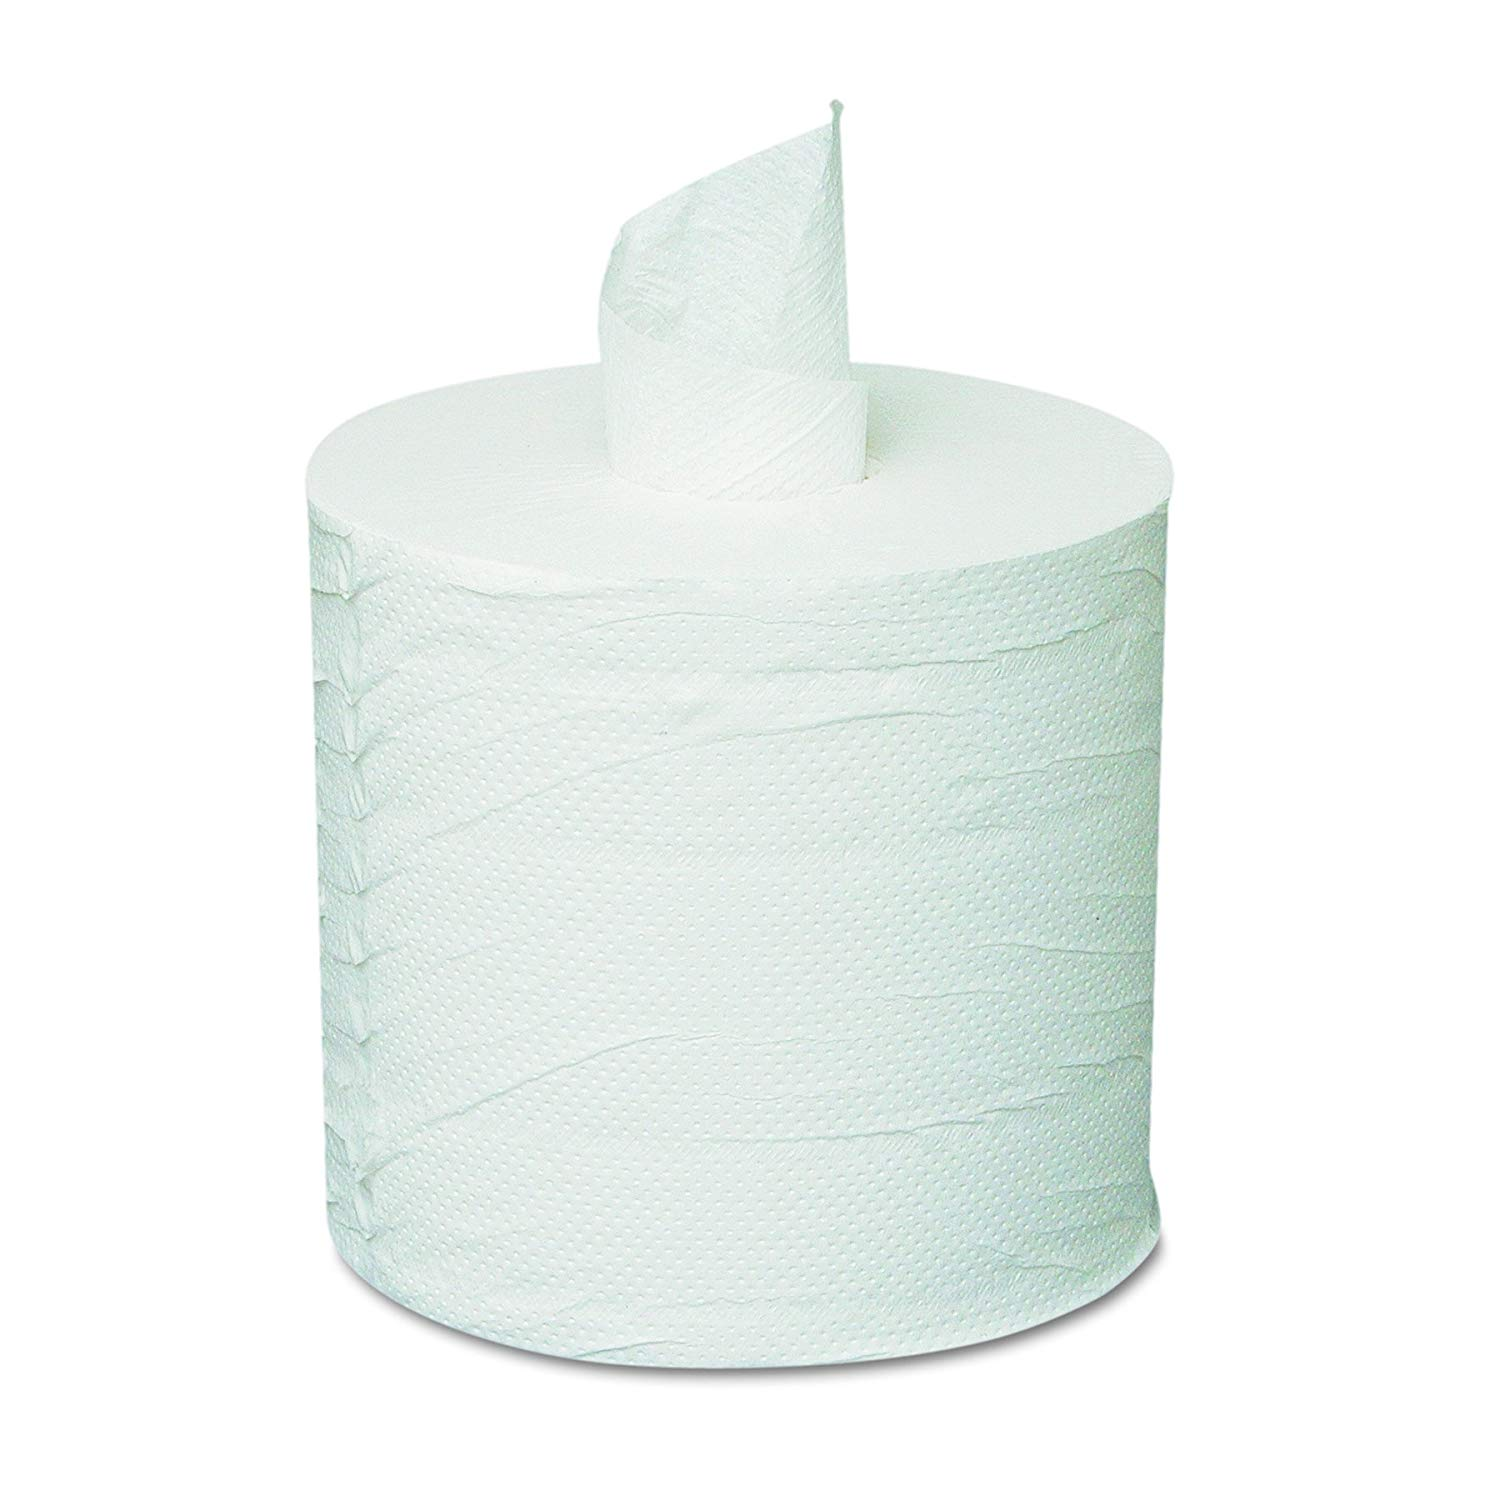 .SPS: RESTROOM - CENTER PULL PAPER TOWELS - PER ROLL